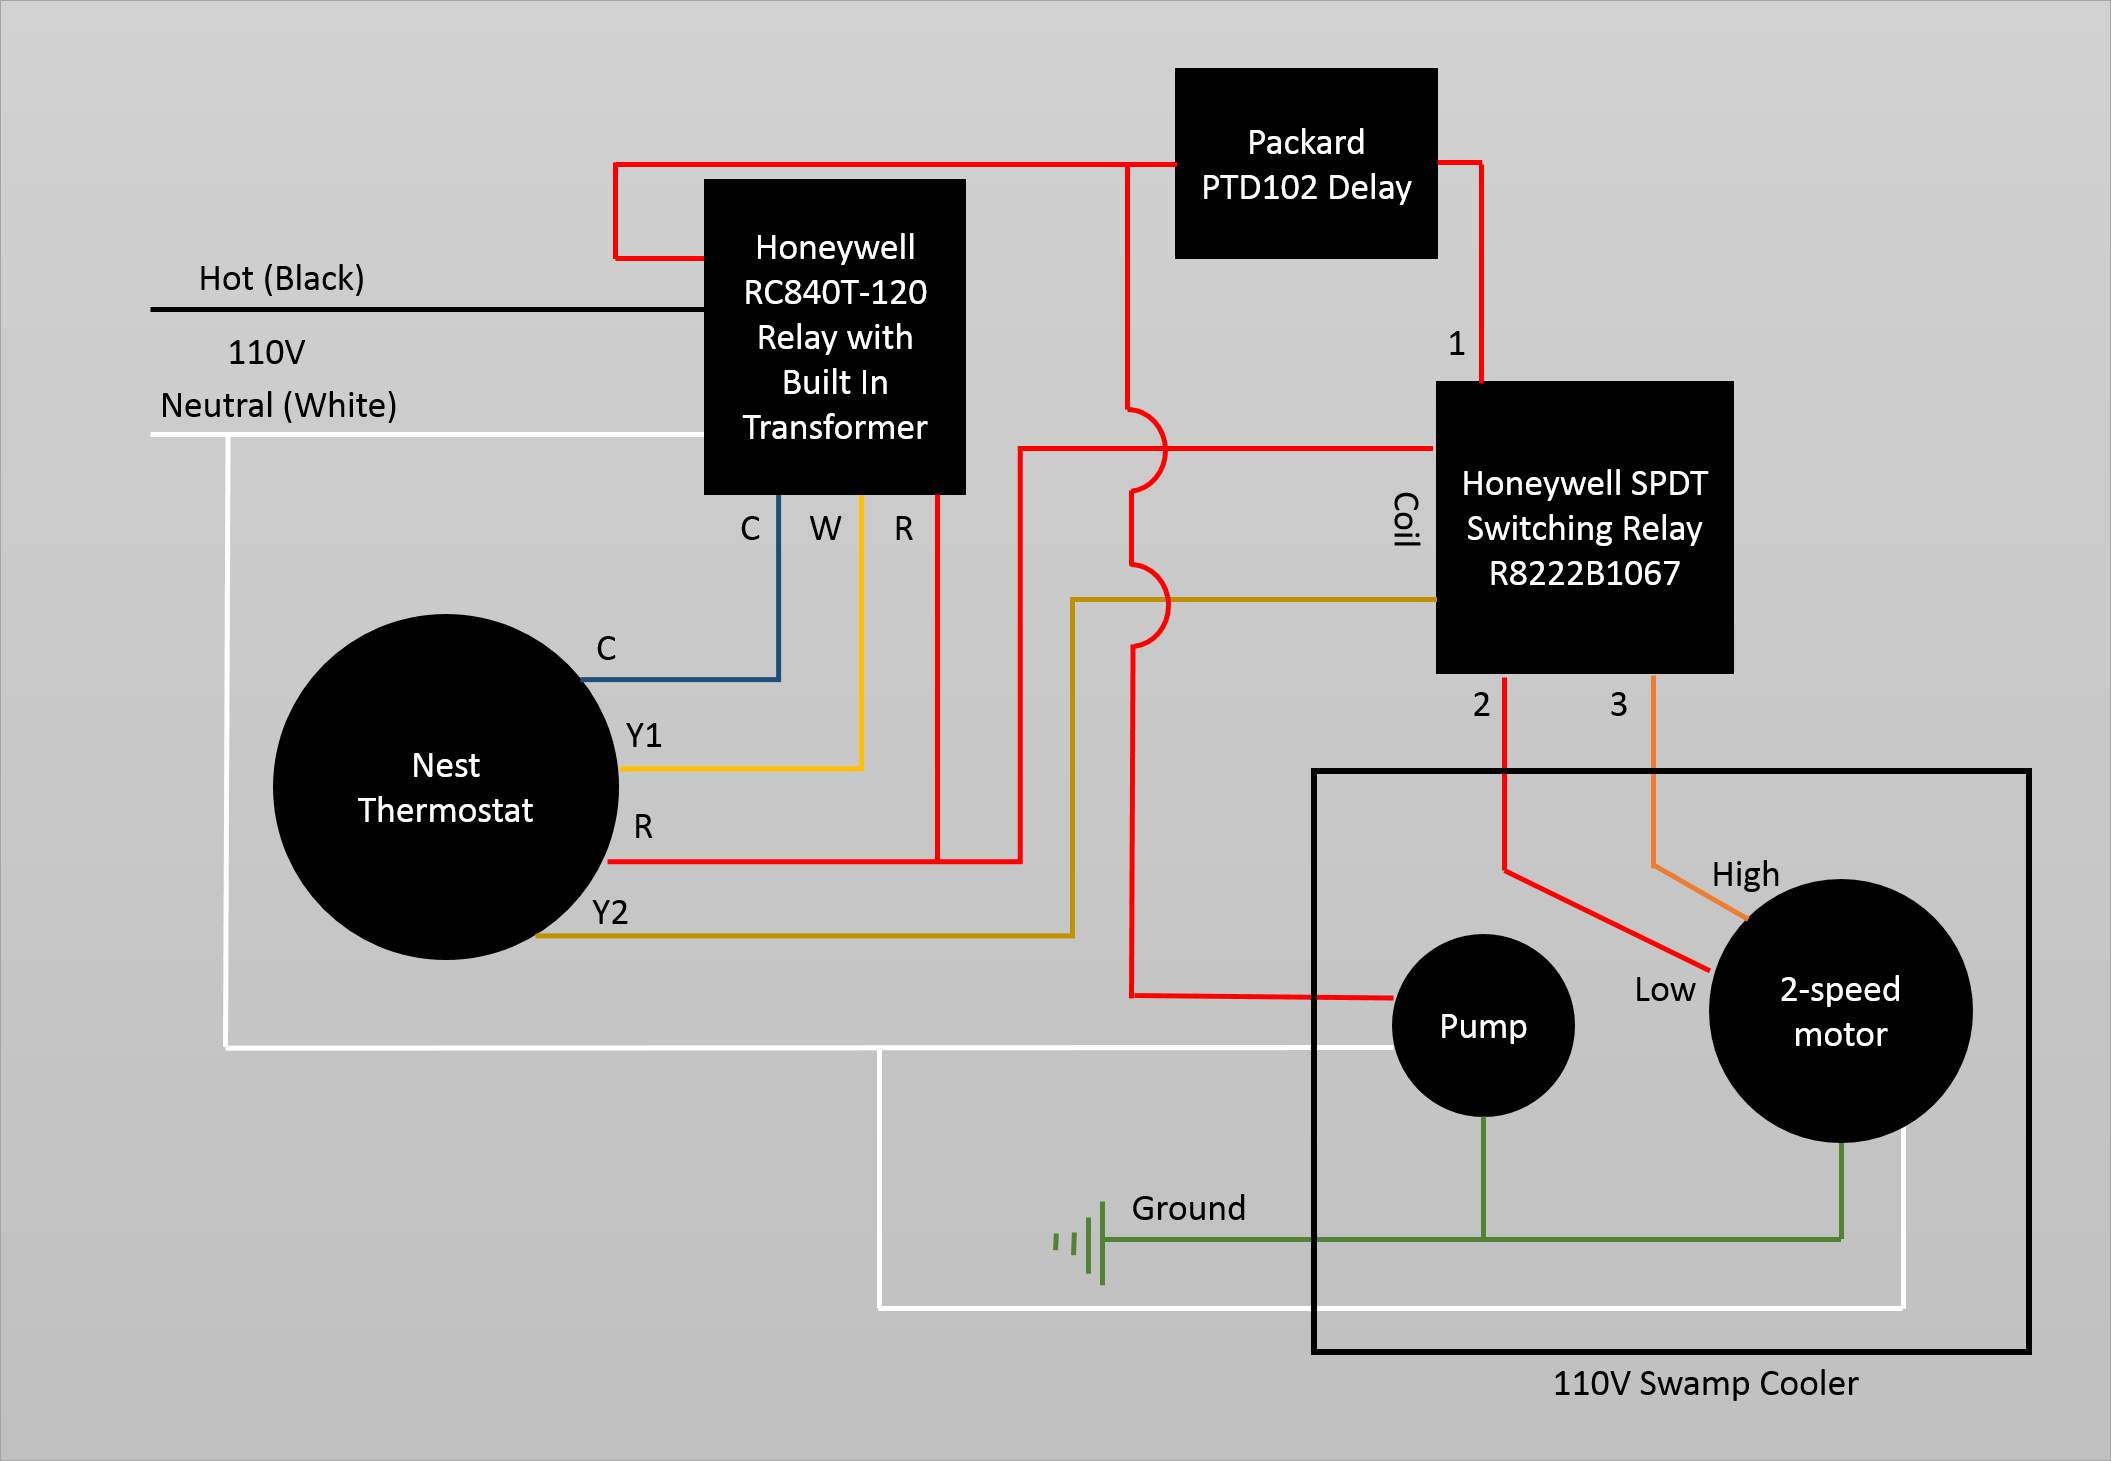 Wiring - Controlling 110V Swamp Cooler Using Nest Thermostat - Home - Nest Thermostat 2Nd Generation Wiring Diagram